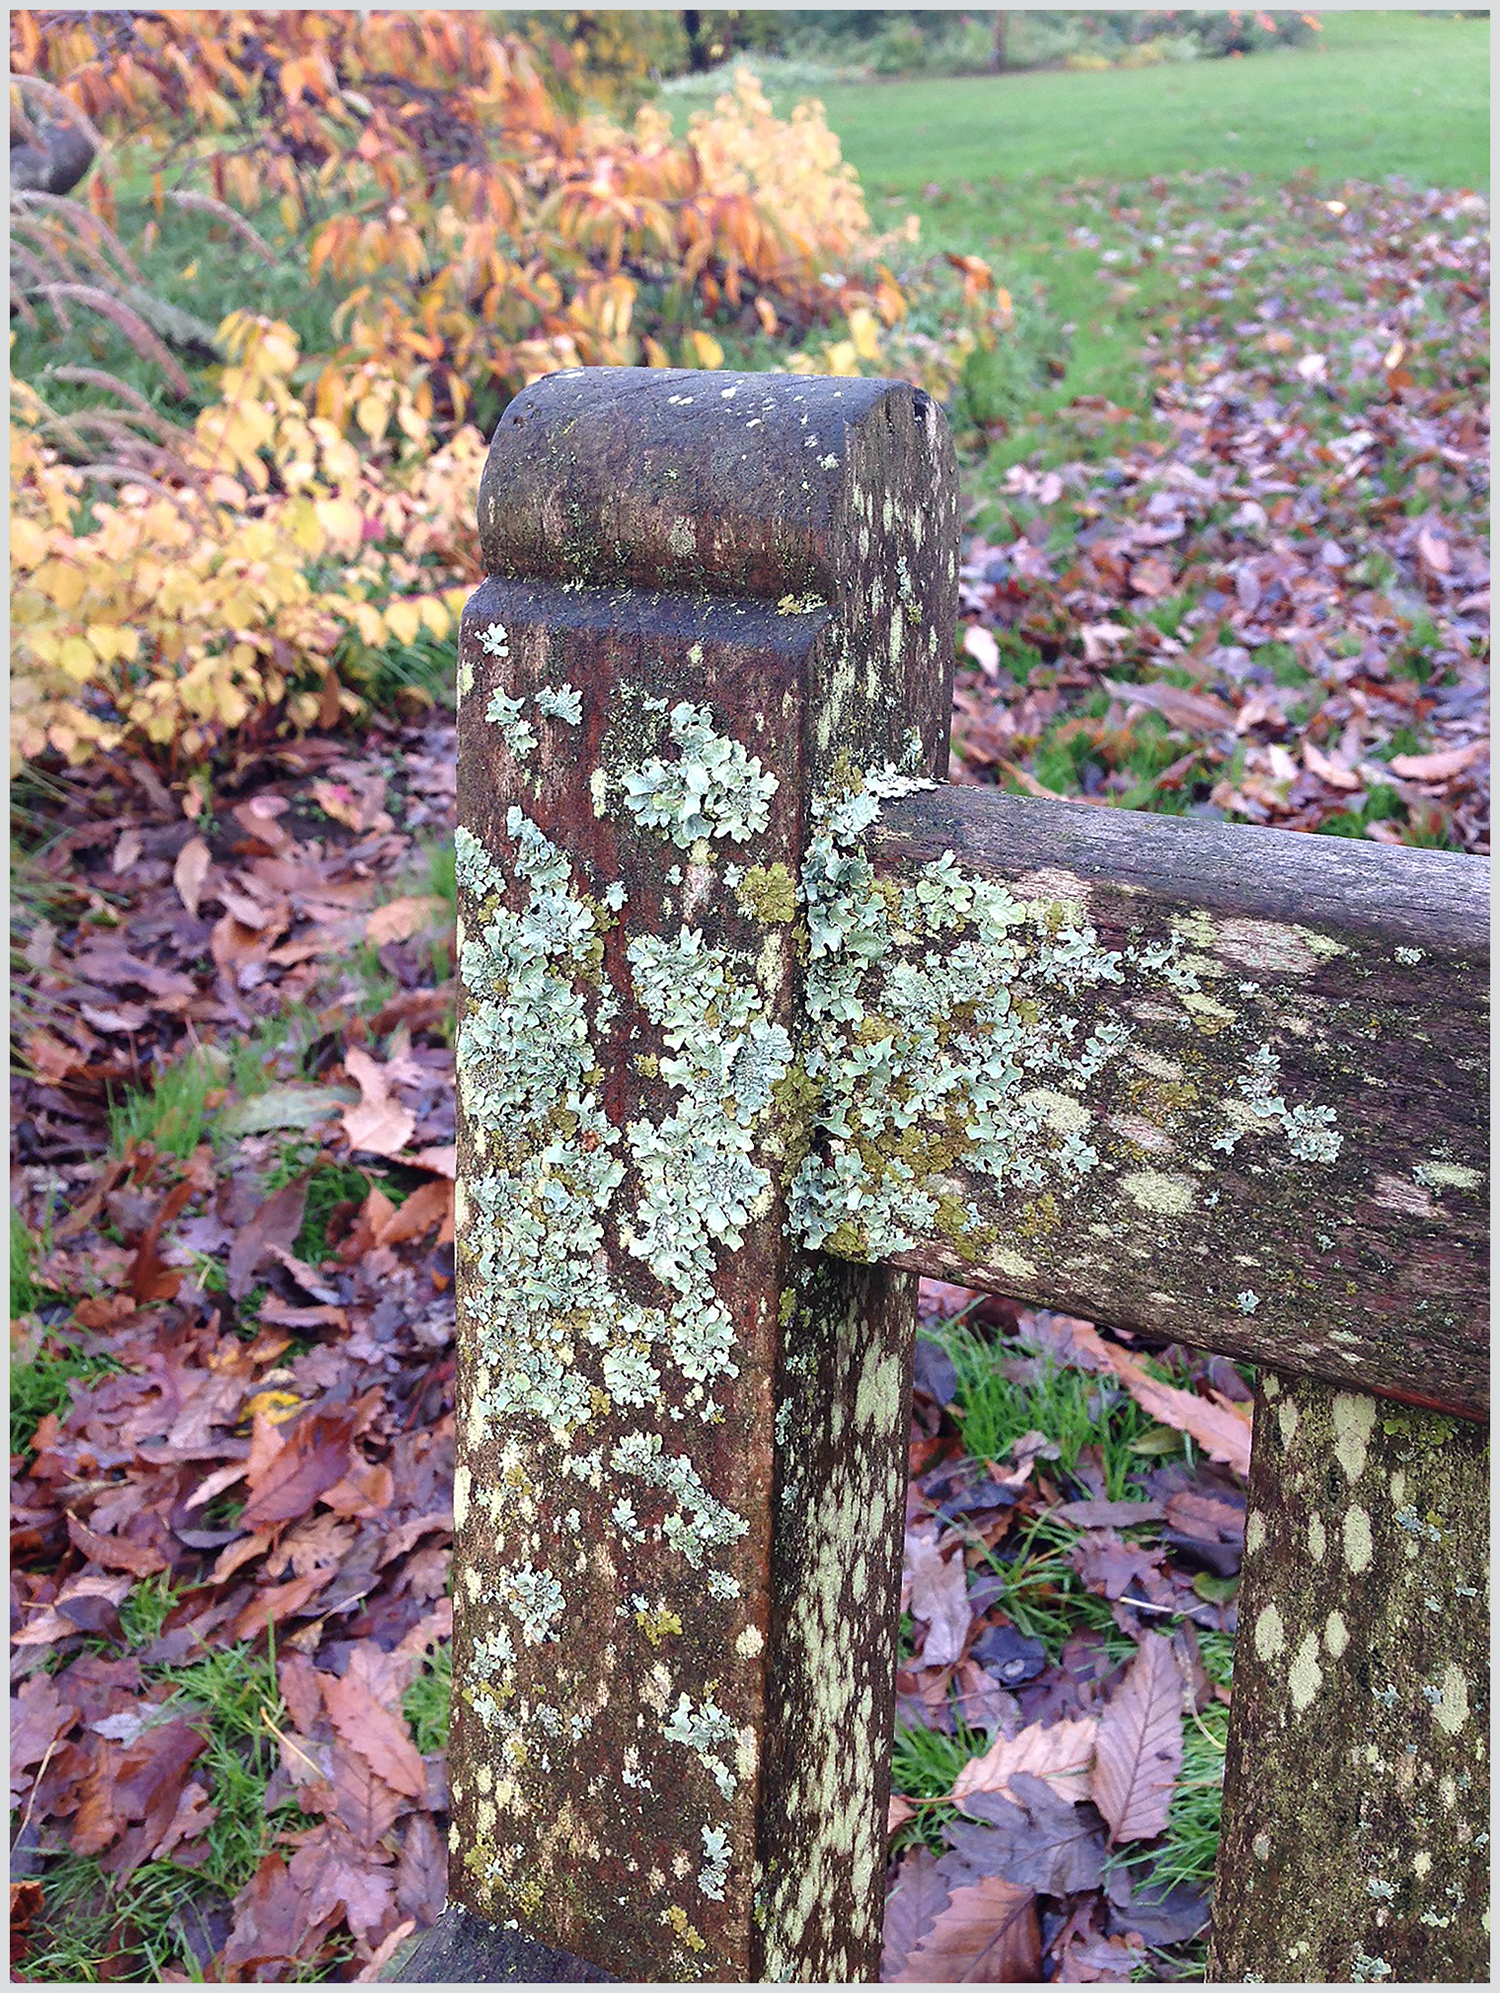 Lichen and colourful leaves